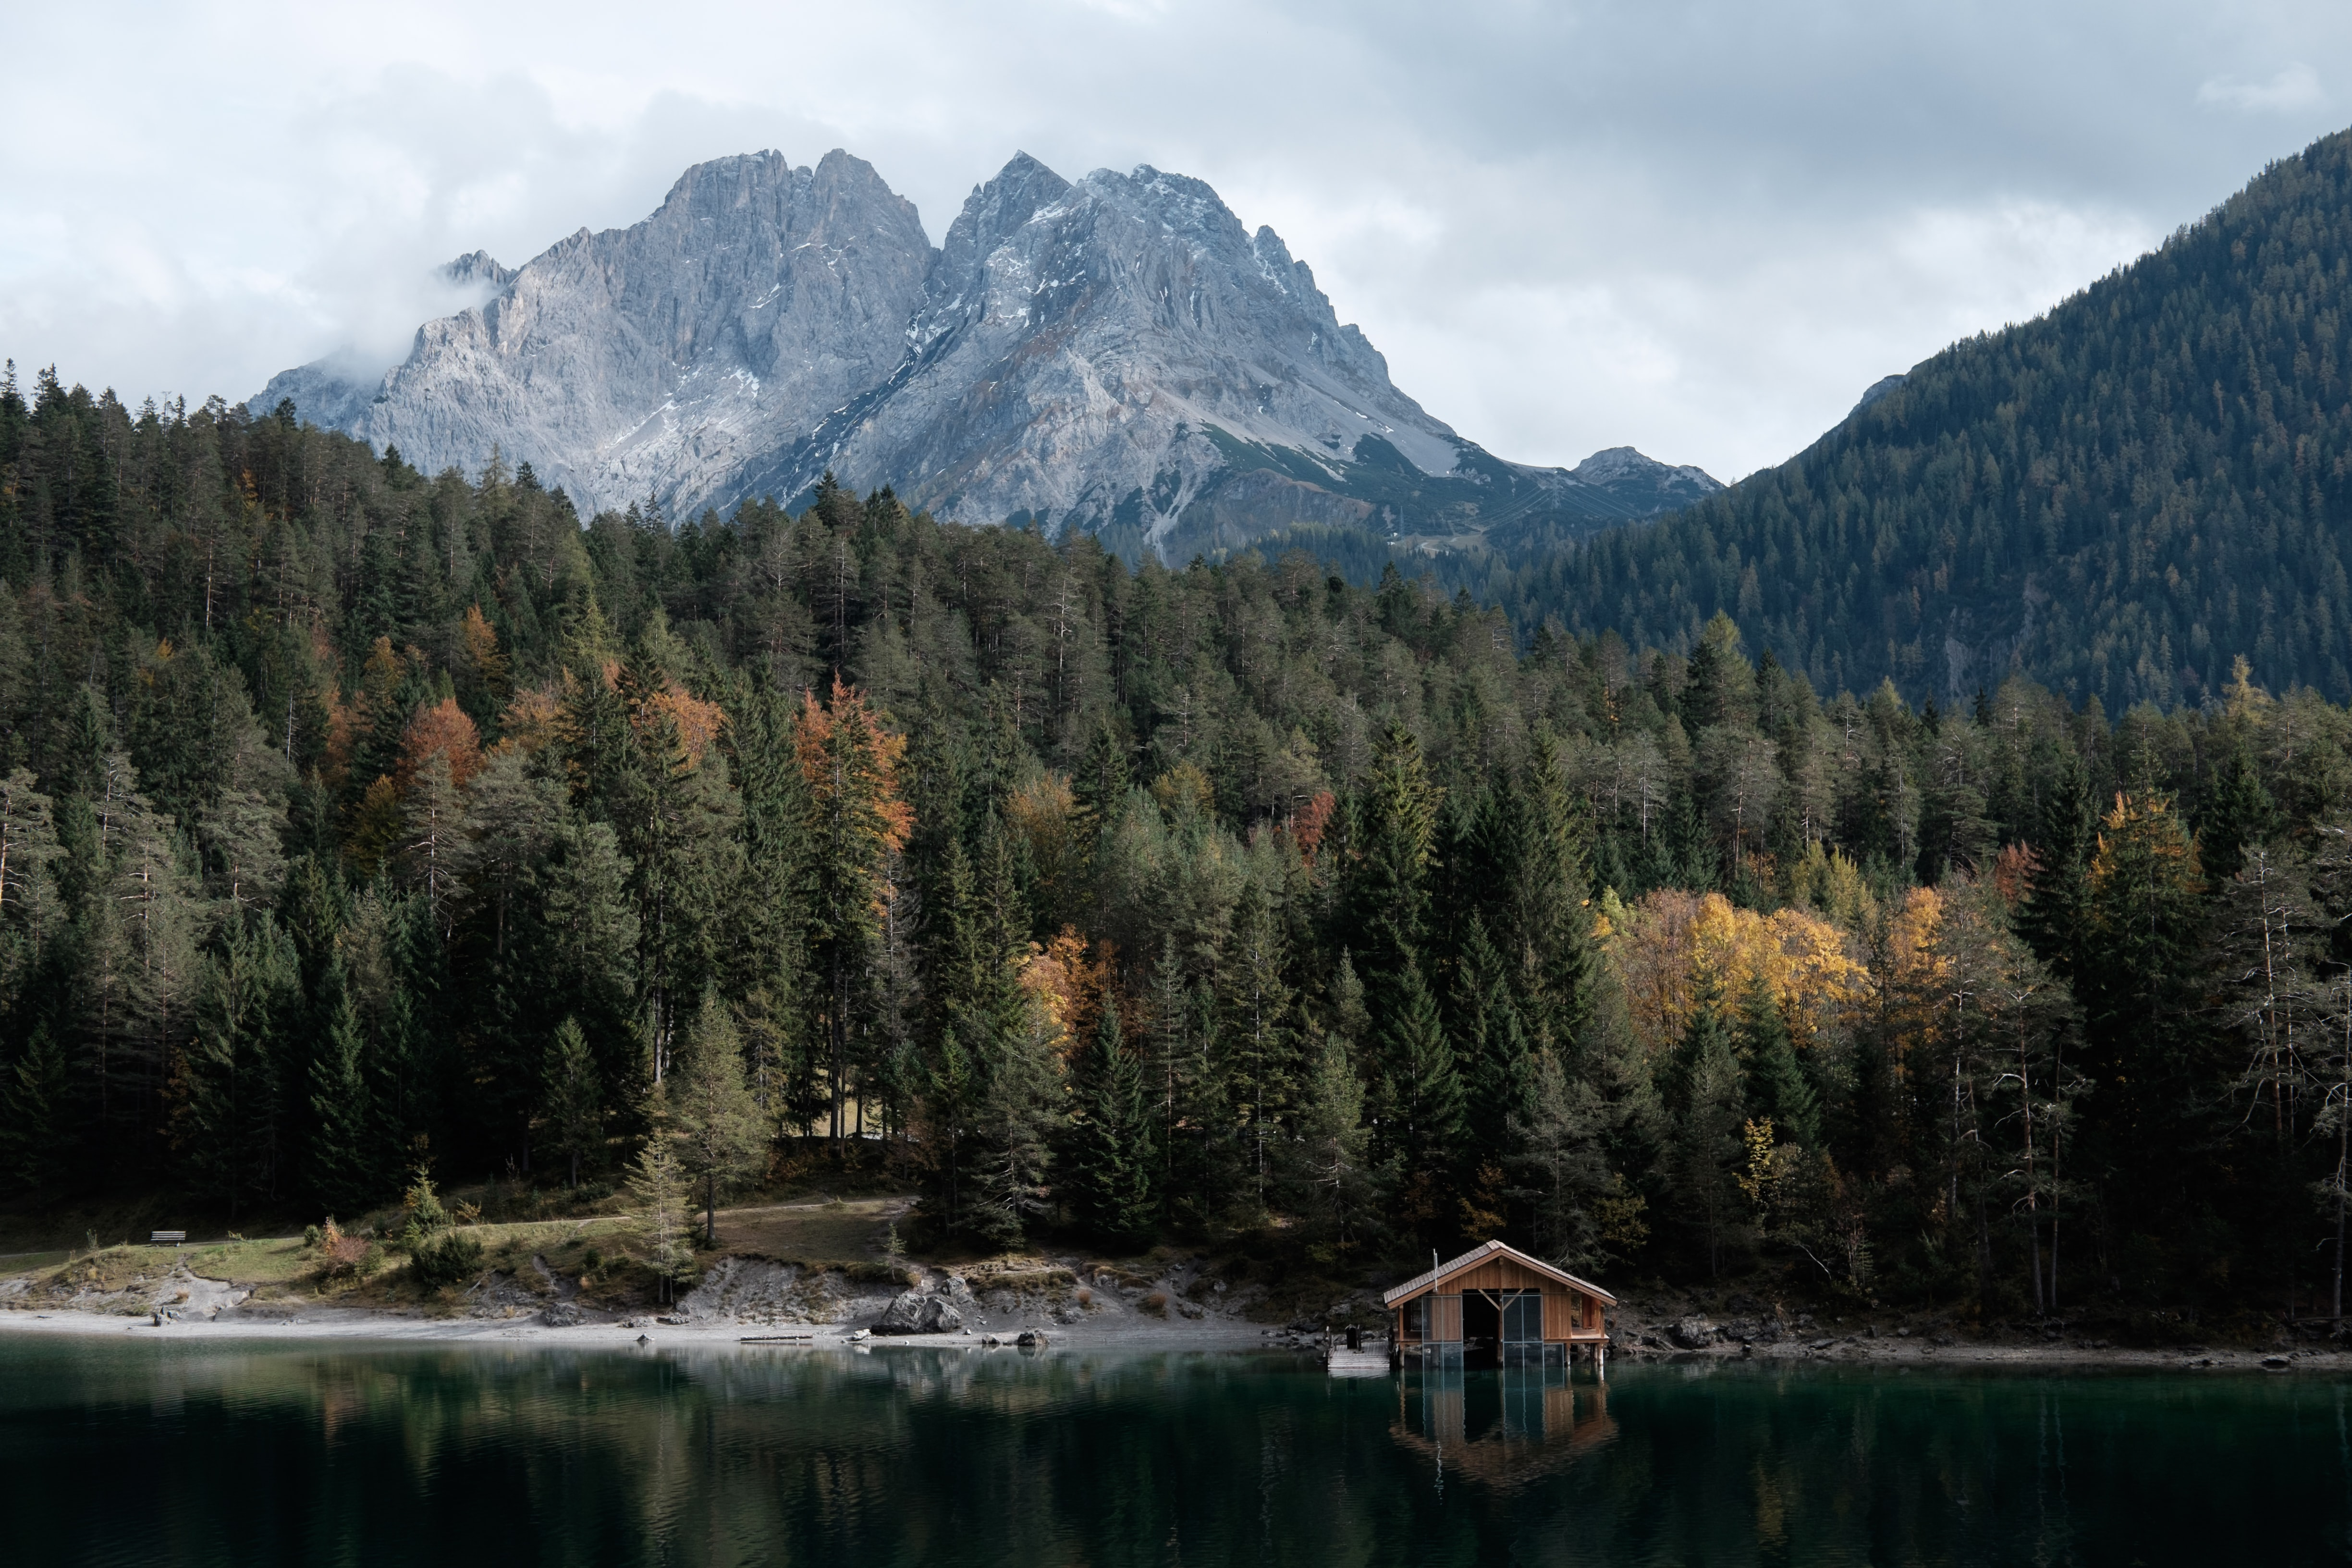 A boathouse on a quiet lake with imposing mountains on the horizon